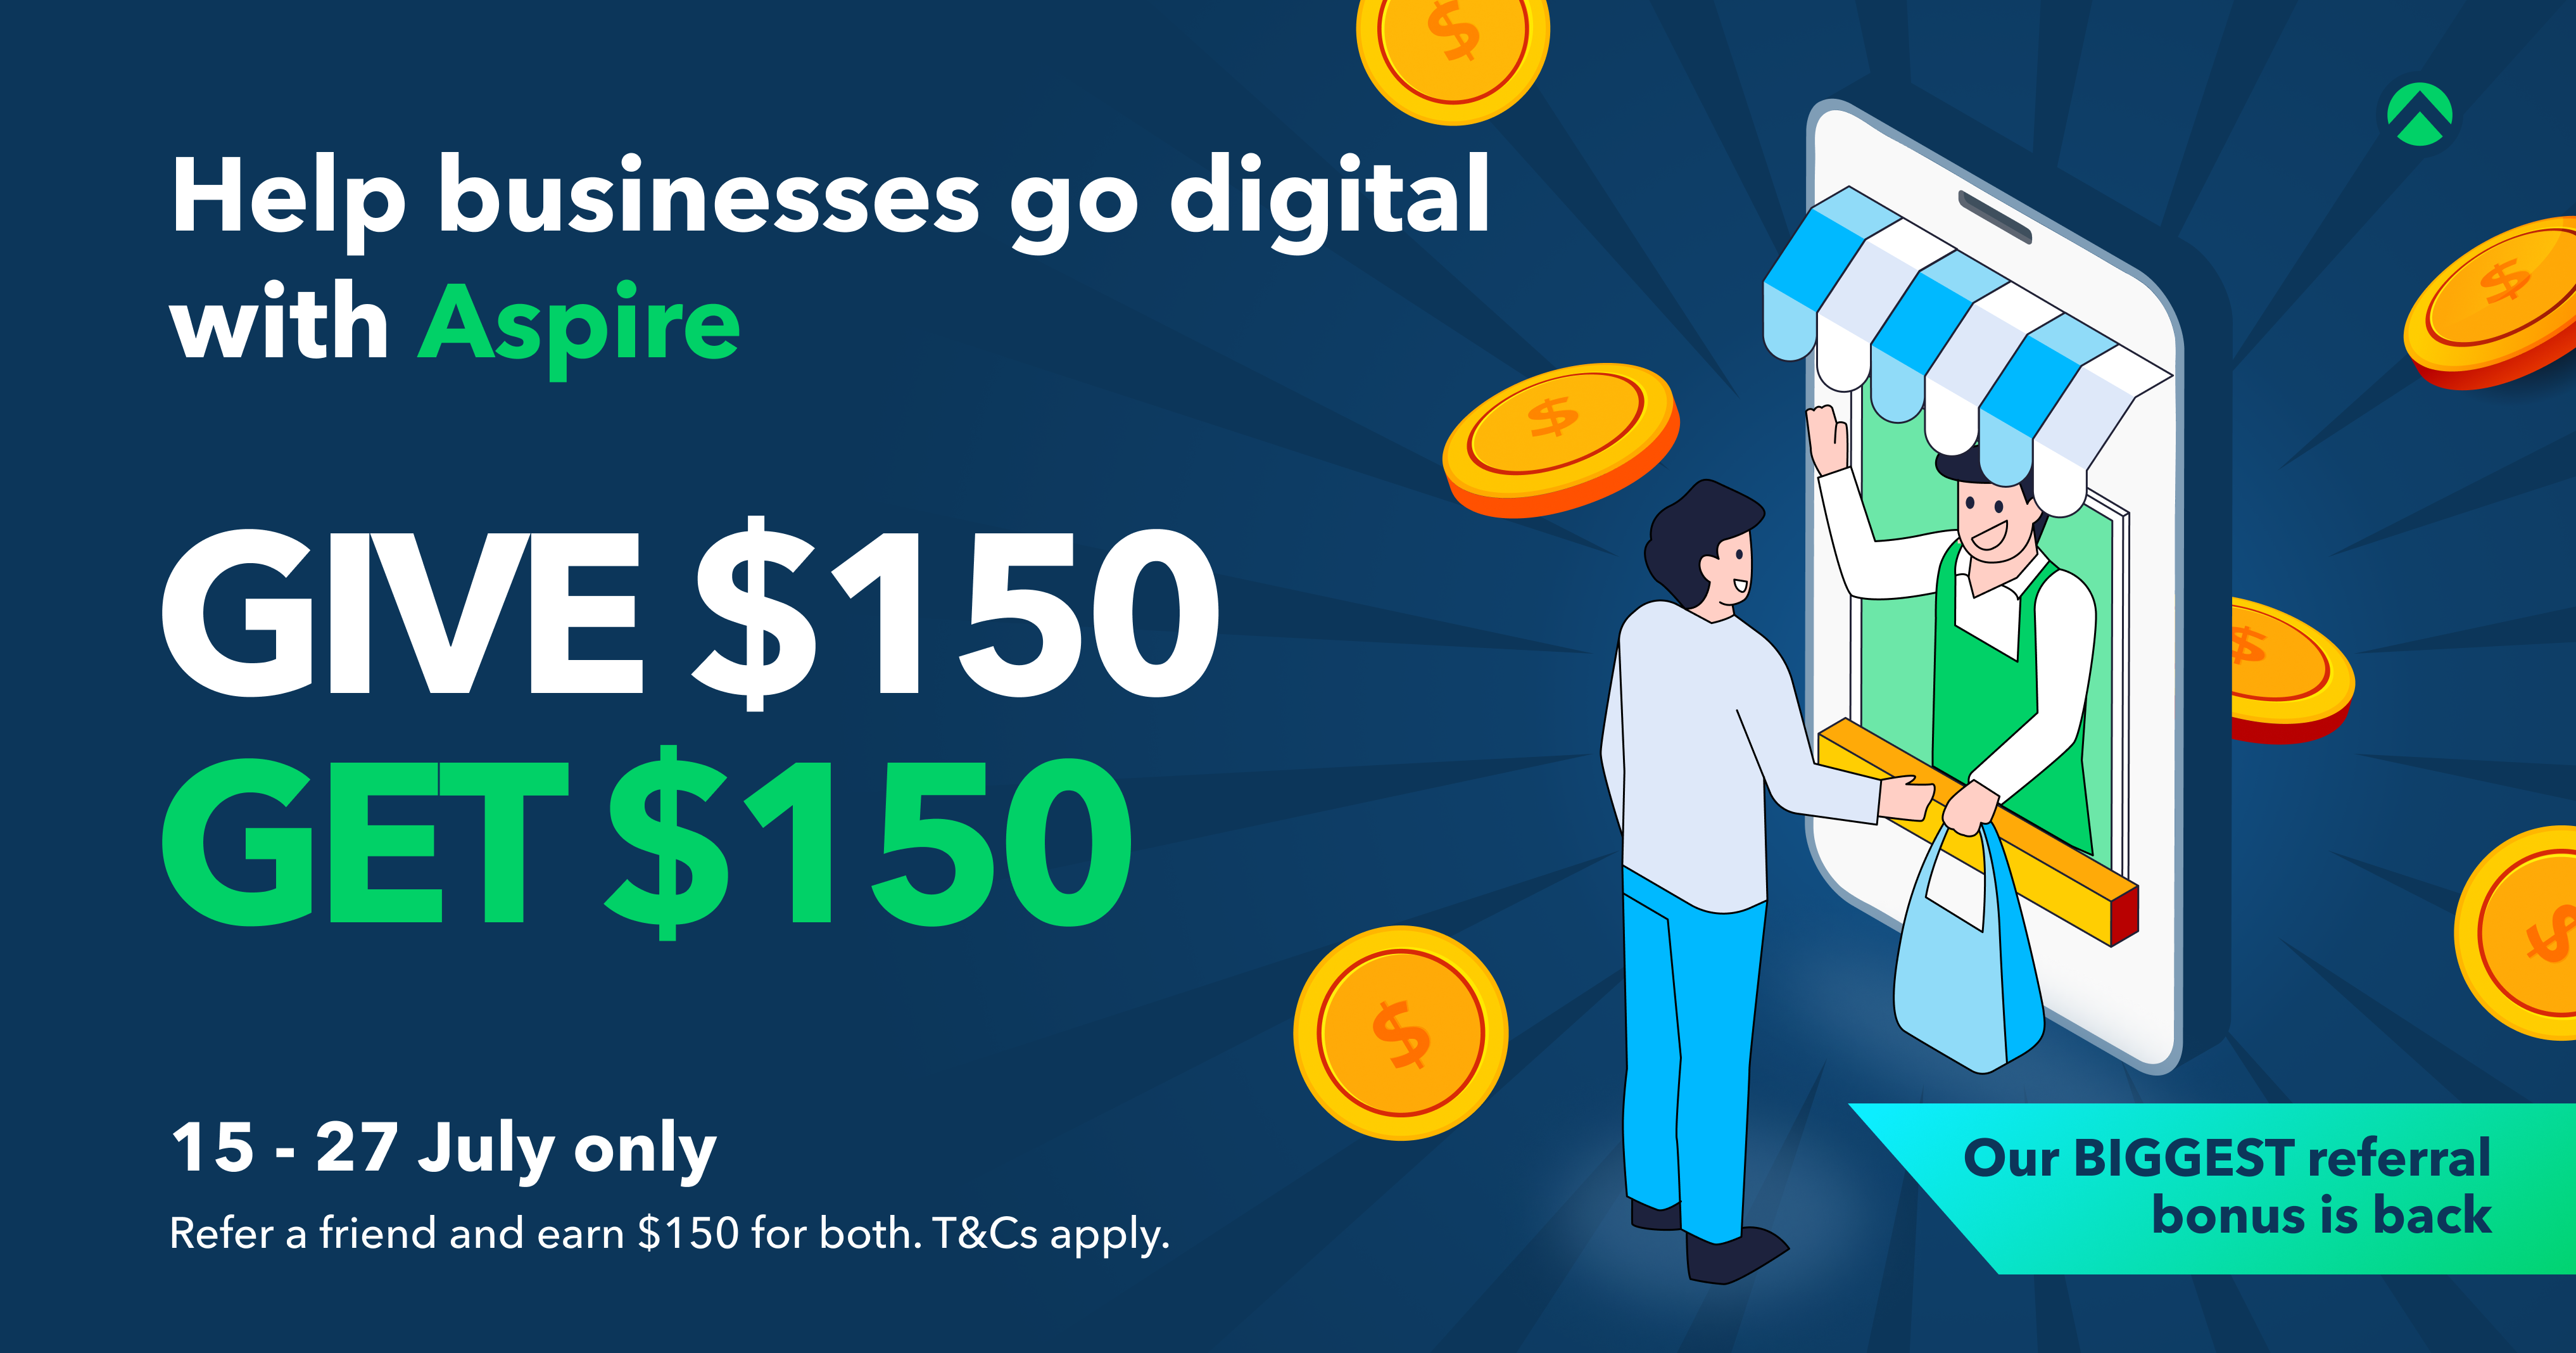 Take home $150 cash with Aspire's latest (and biggest) referral promotion!